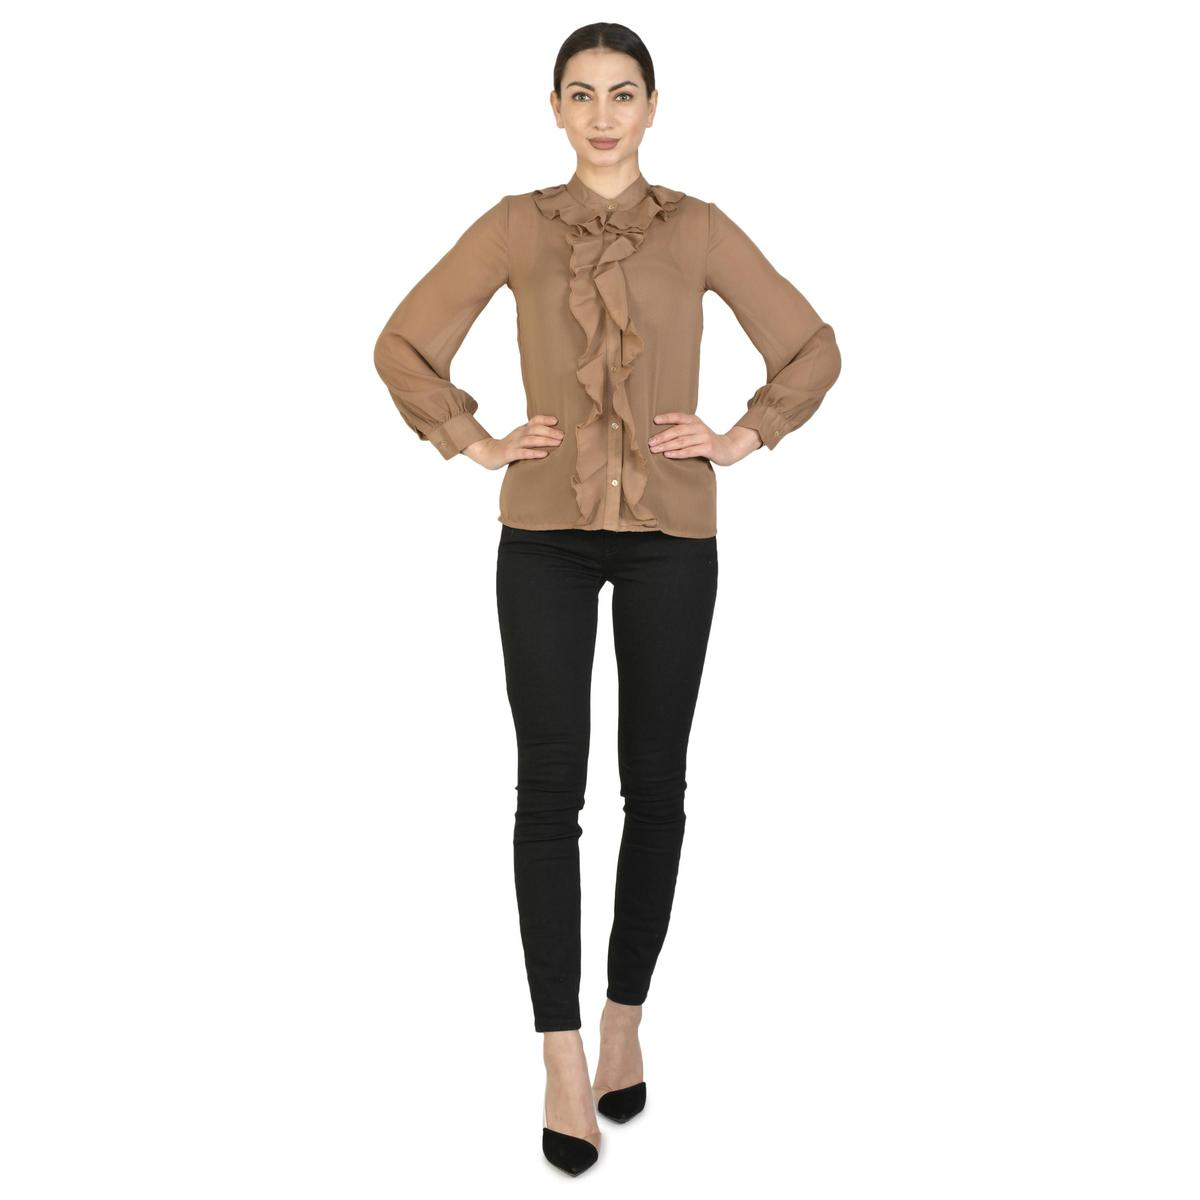 Henry And Zoe - Brown Colored Regular Polyester Top